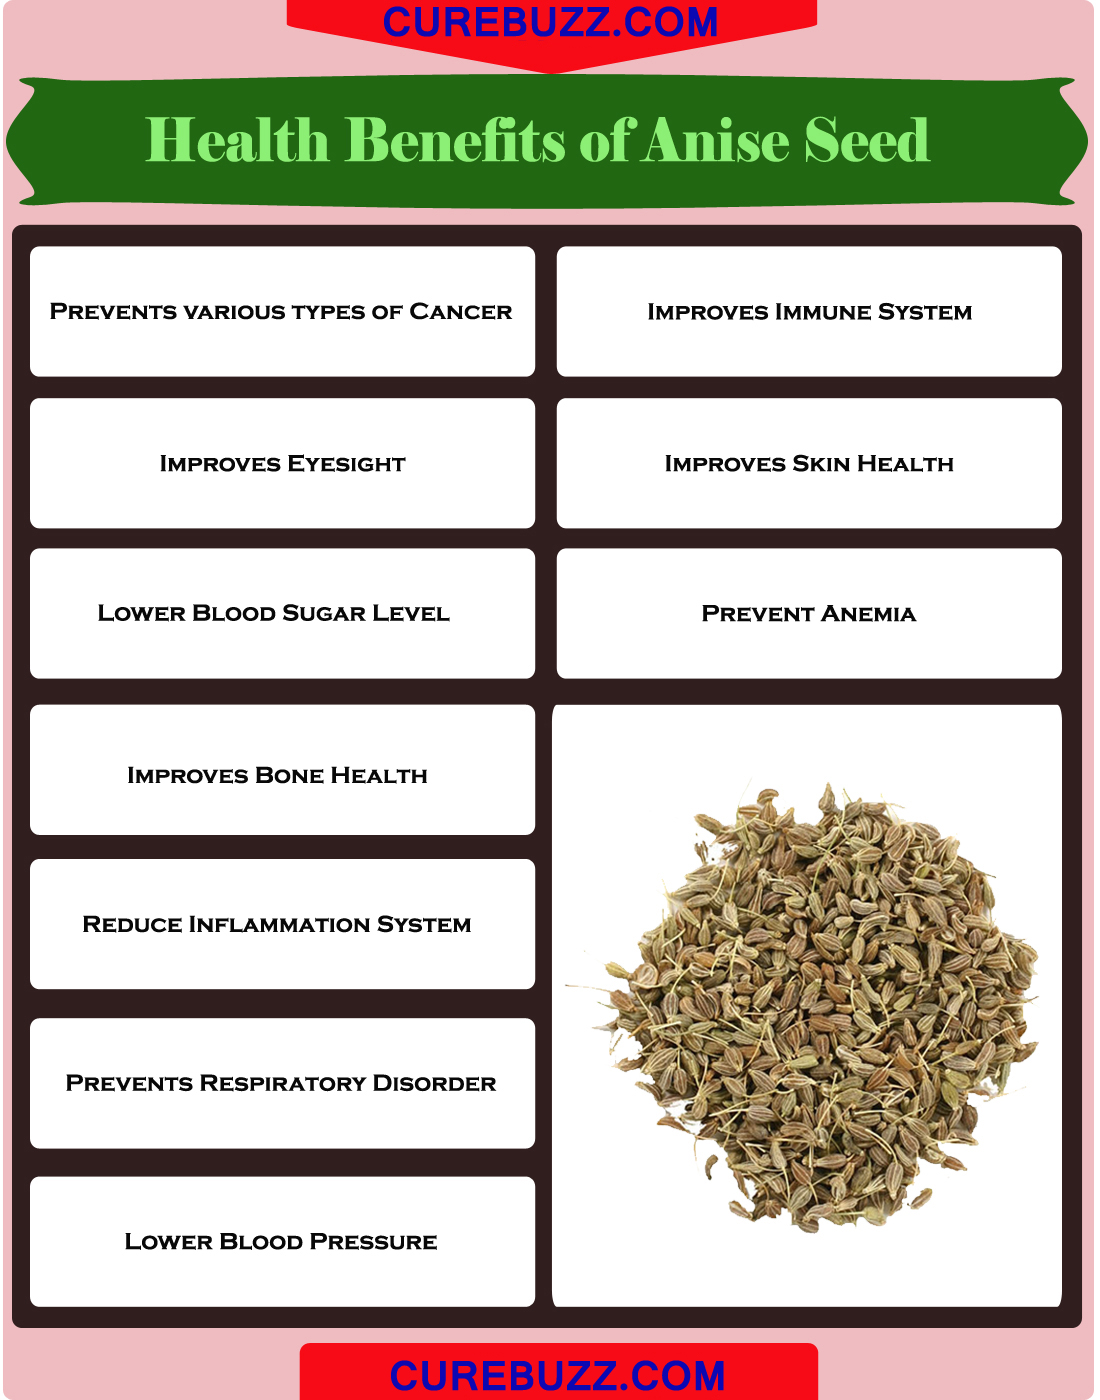 Health Benefits of Anise Seed